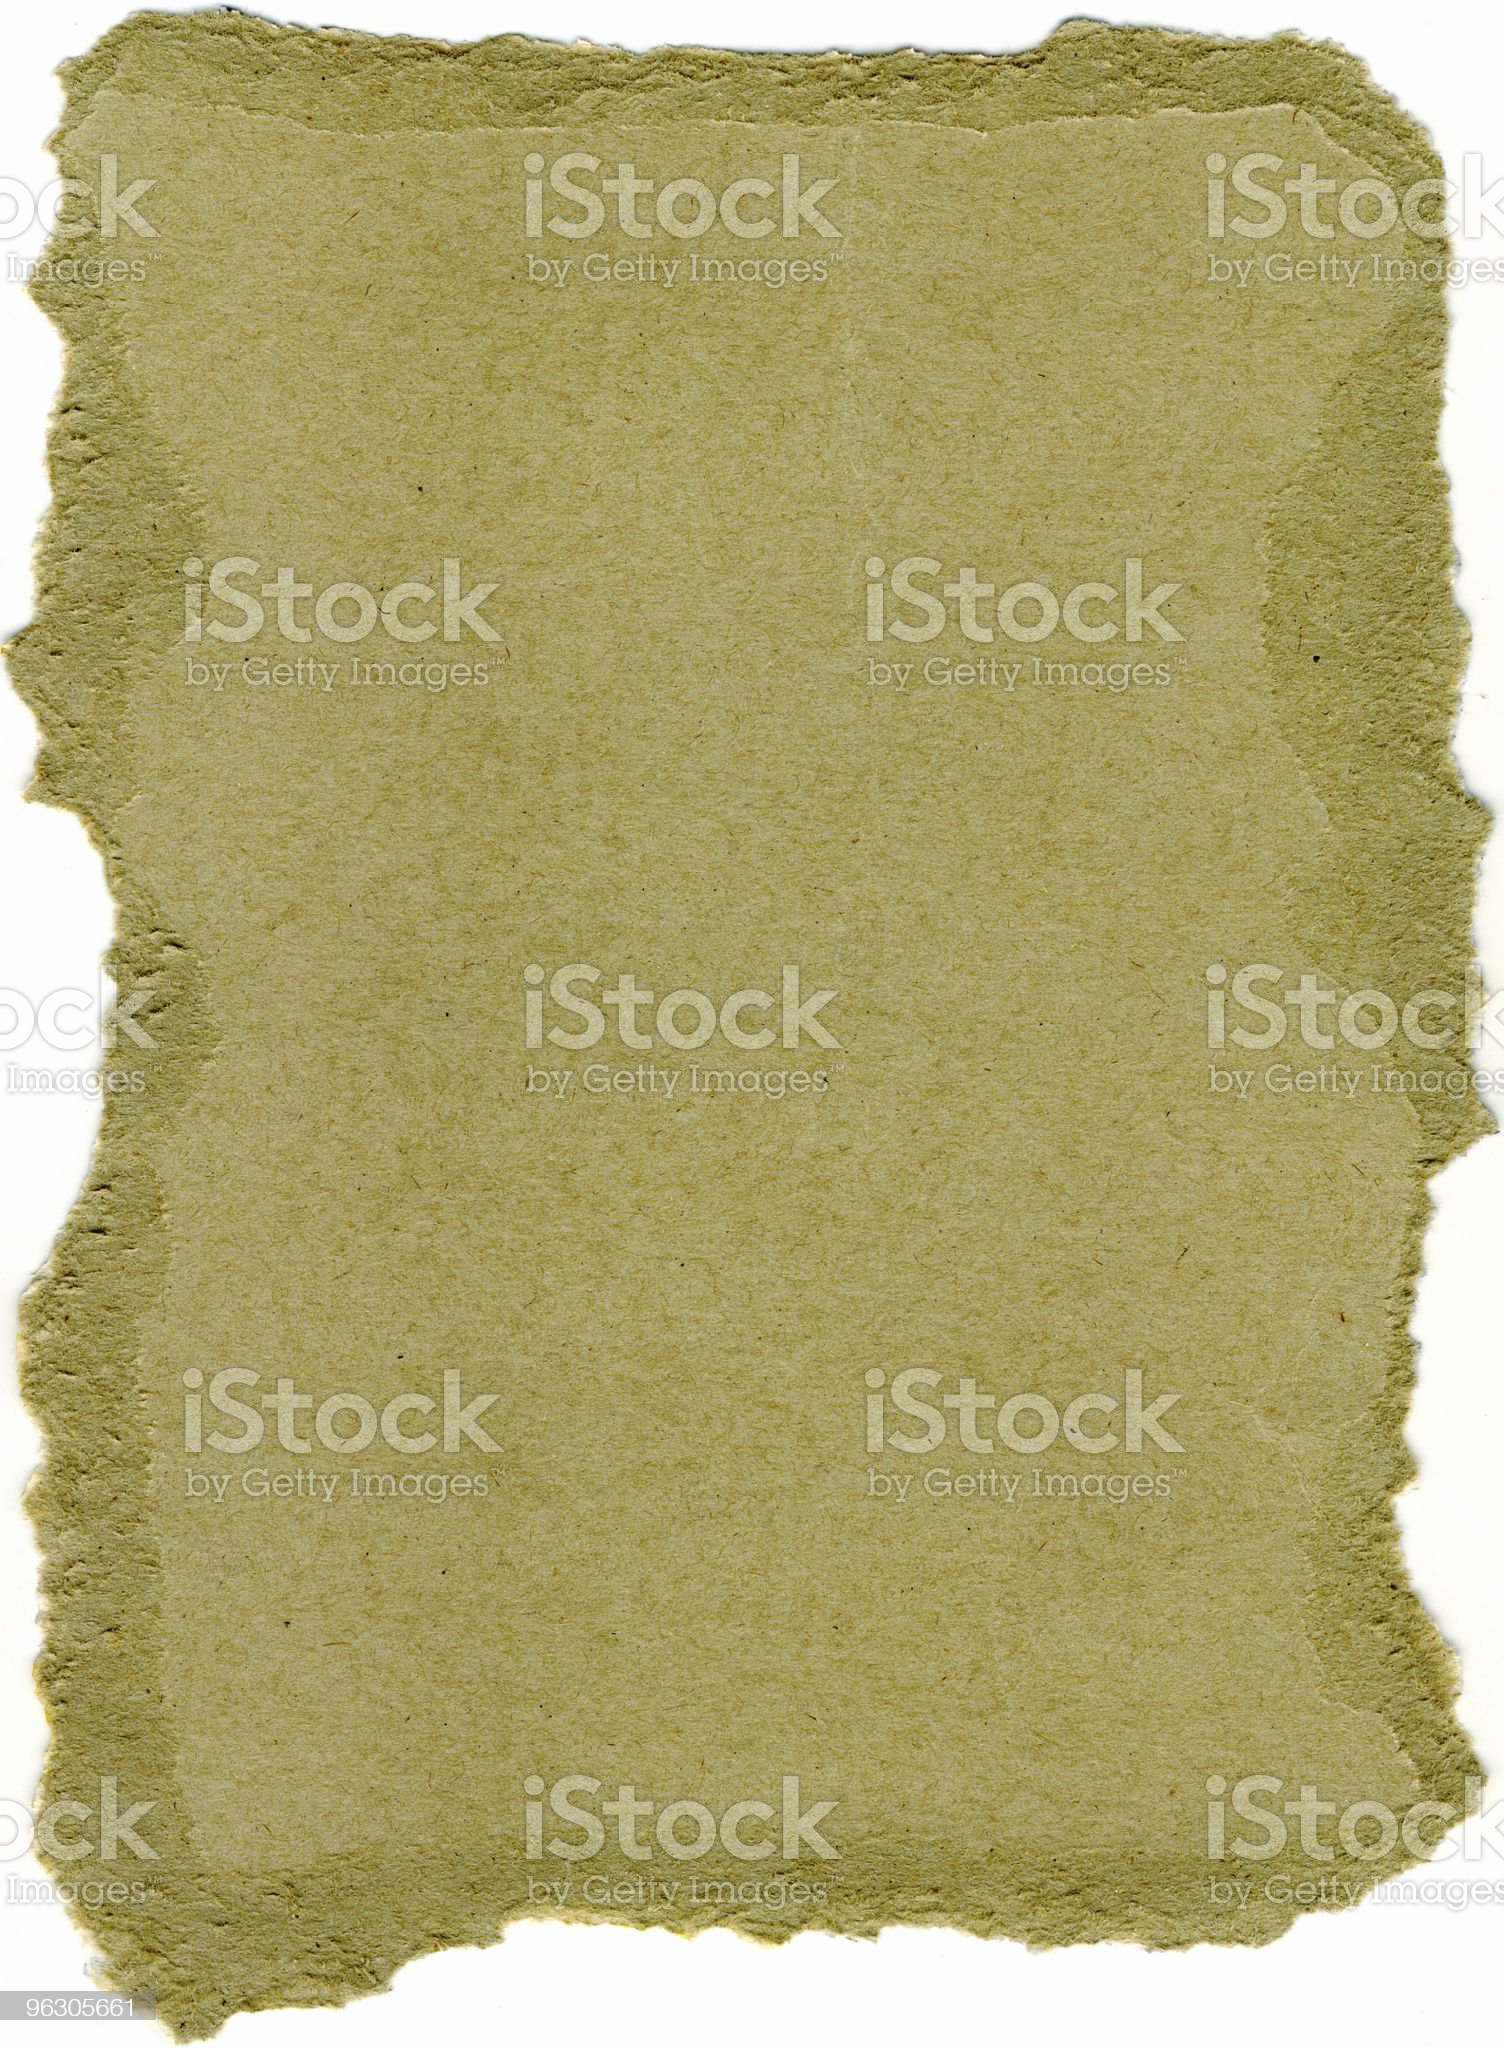 Rough Card Background royalty-free stock vector art